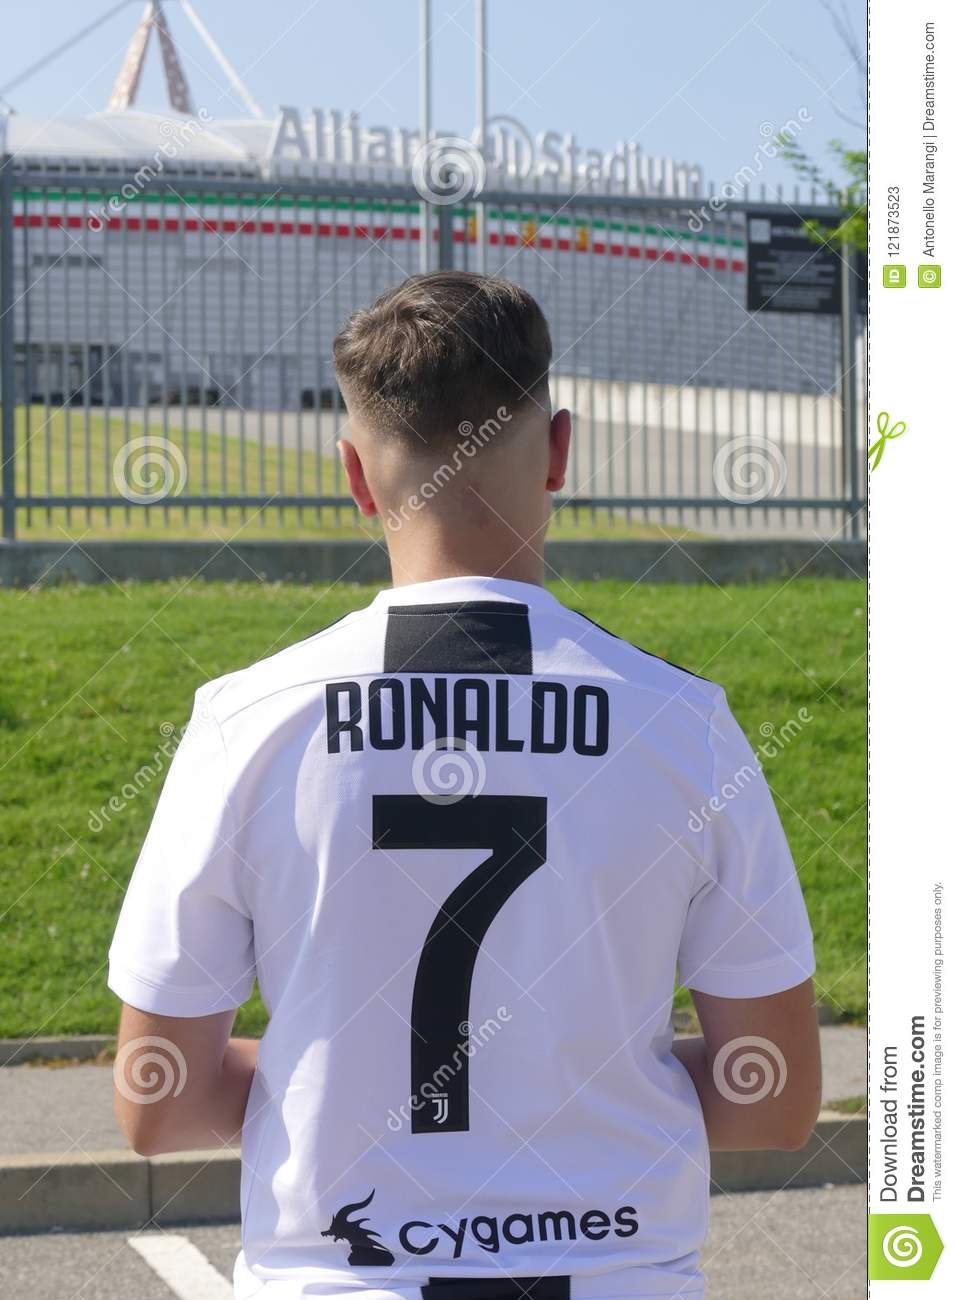 info for ad85e bc618 Supporter Of Juventus Fc Wearing Cristiano Ronaldo Jersey ...